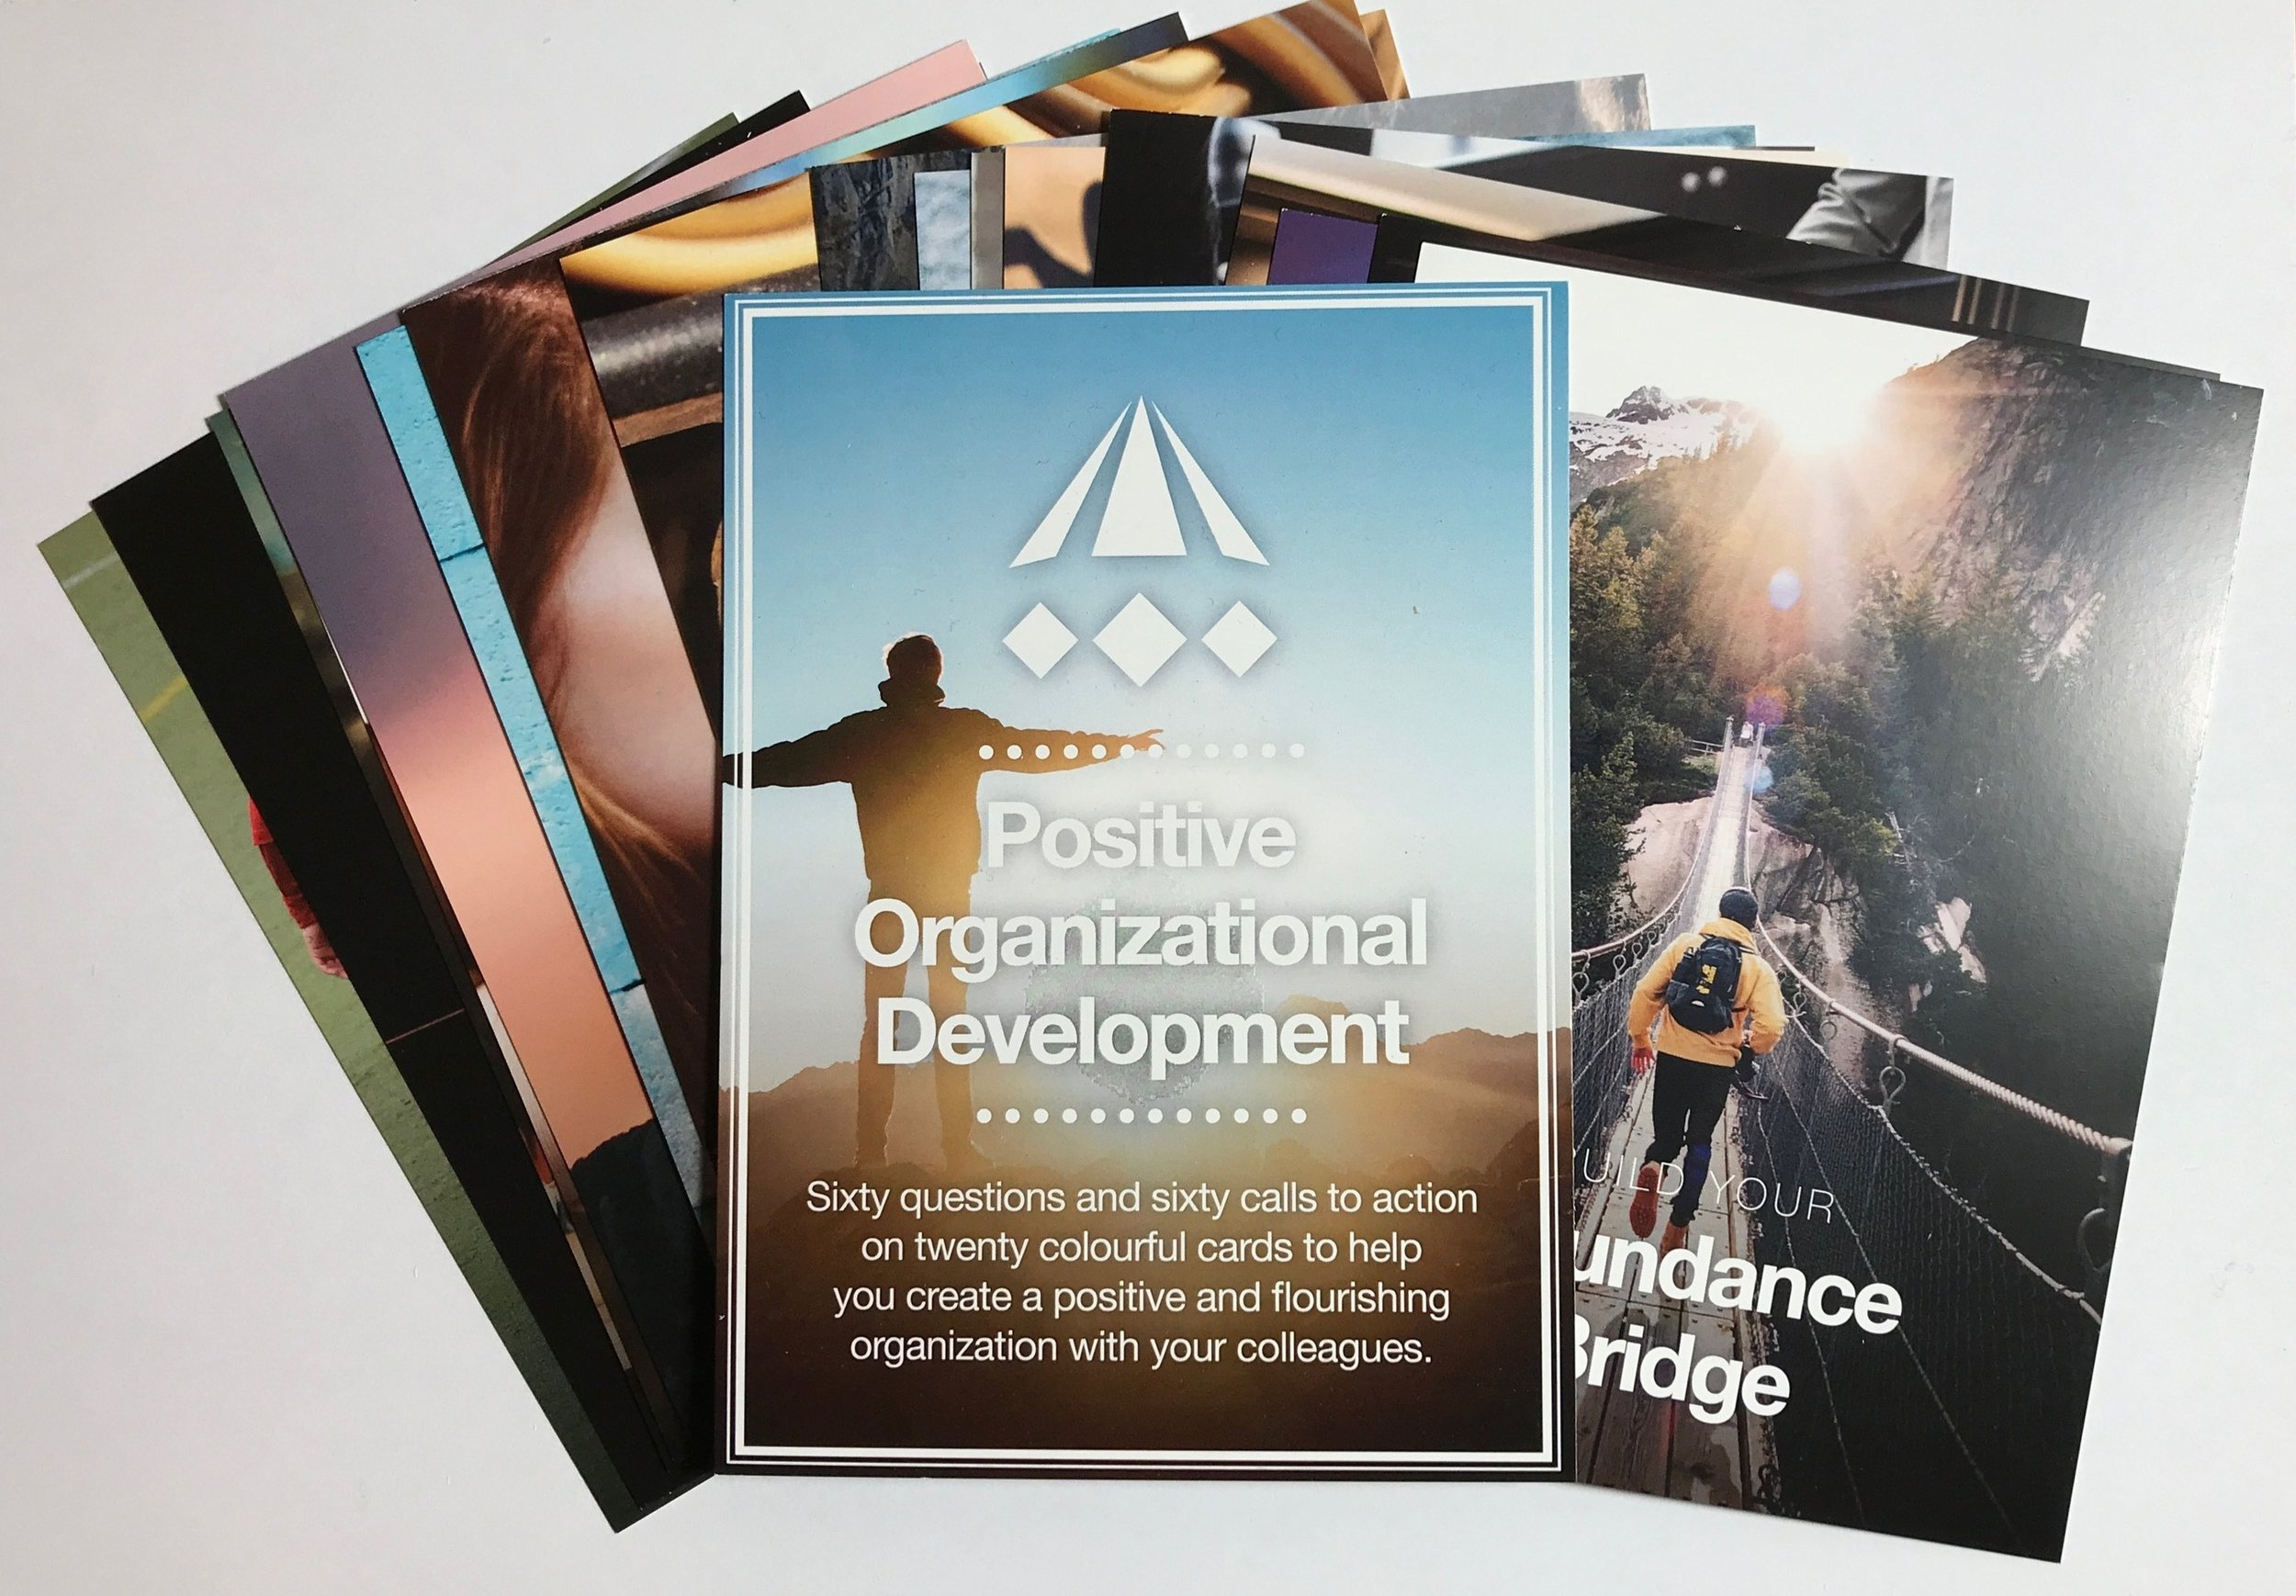 Positive Organisational Development Cards - Our Positive Organizational Development Cards offer an engaging and playful way of introducing exciting positive development ideas to individuals, teams and organizations.